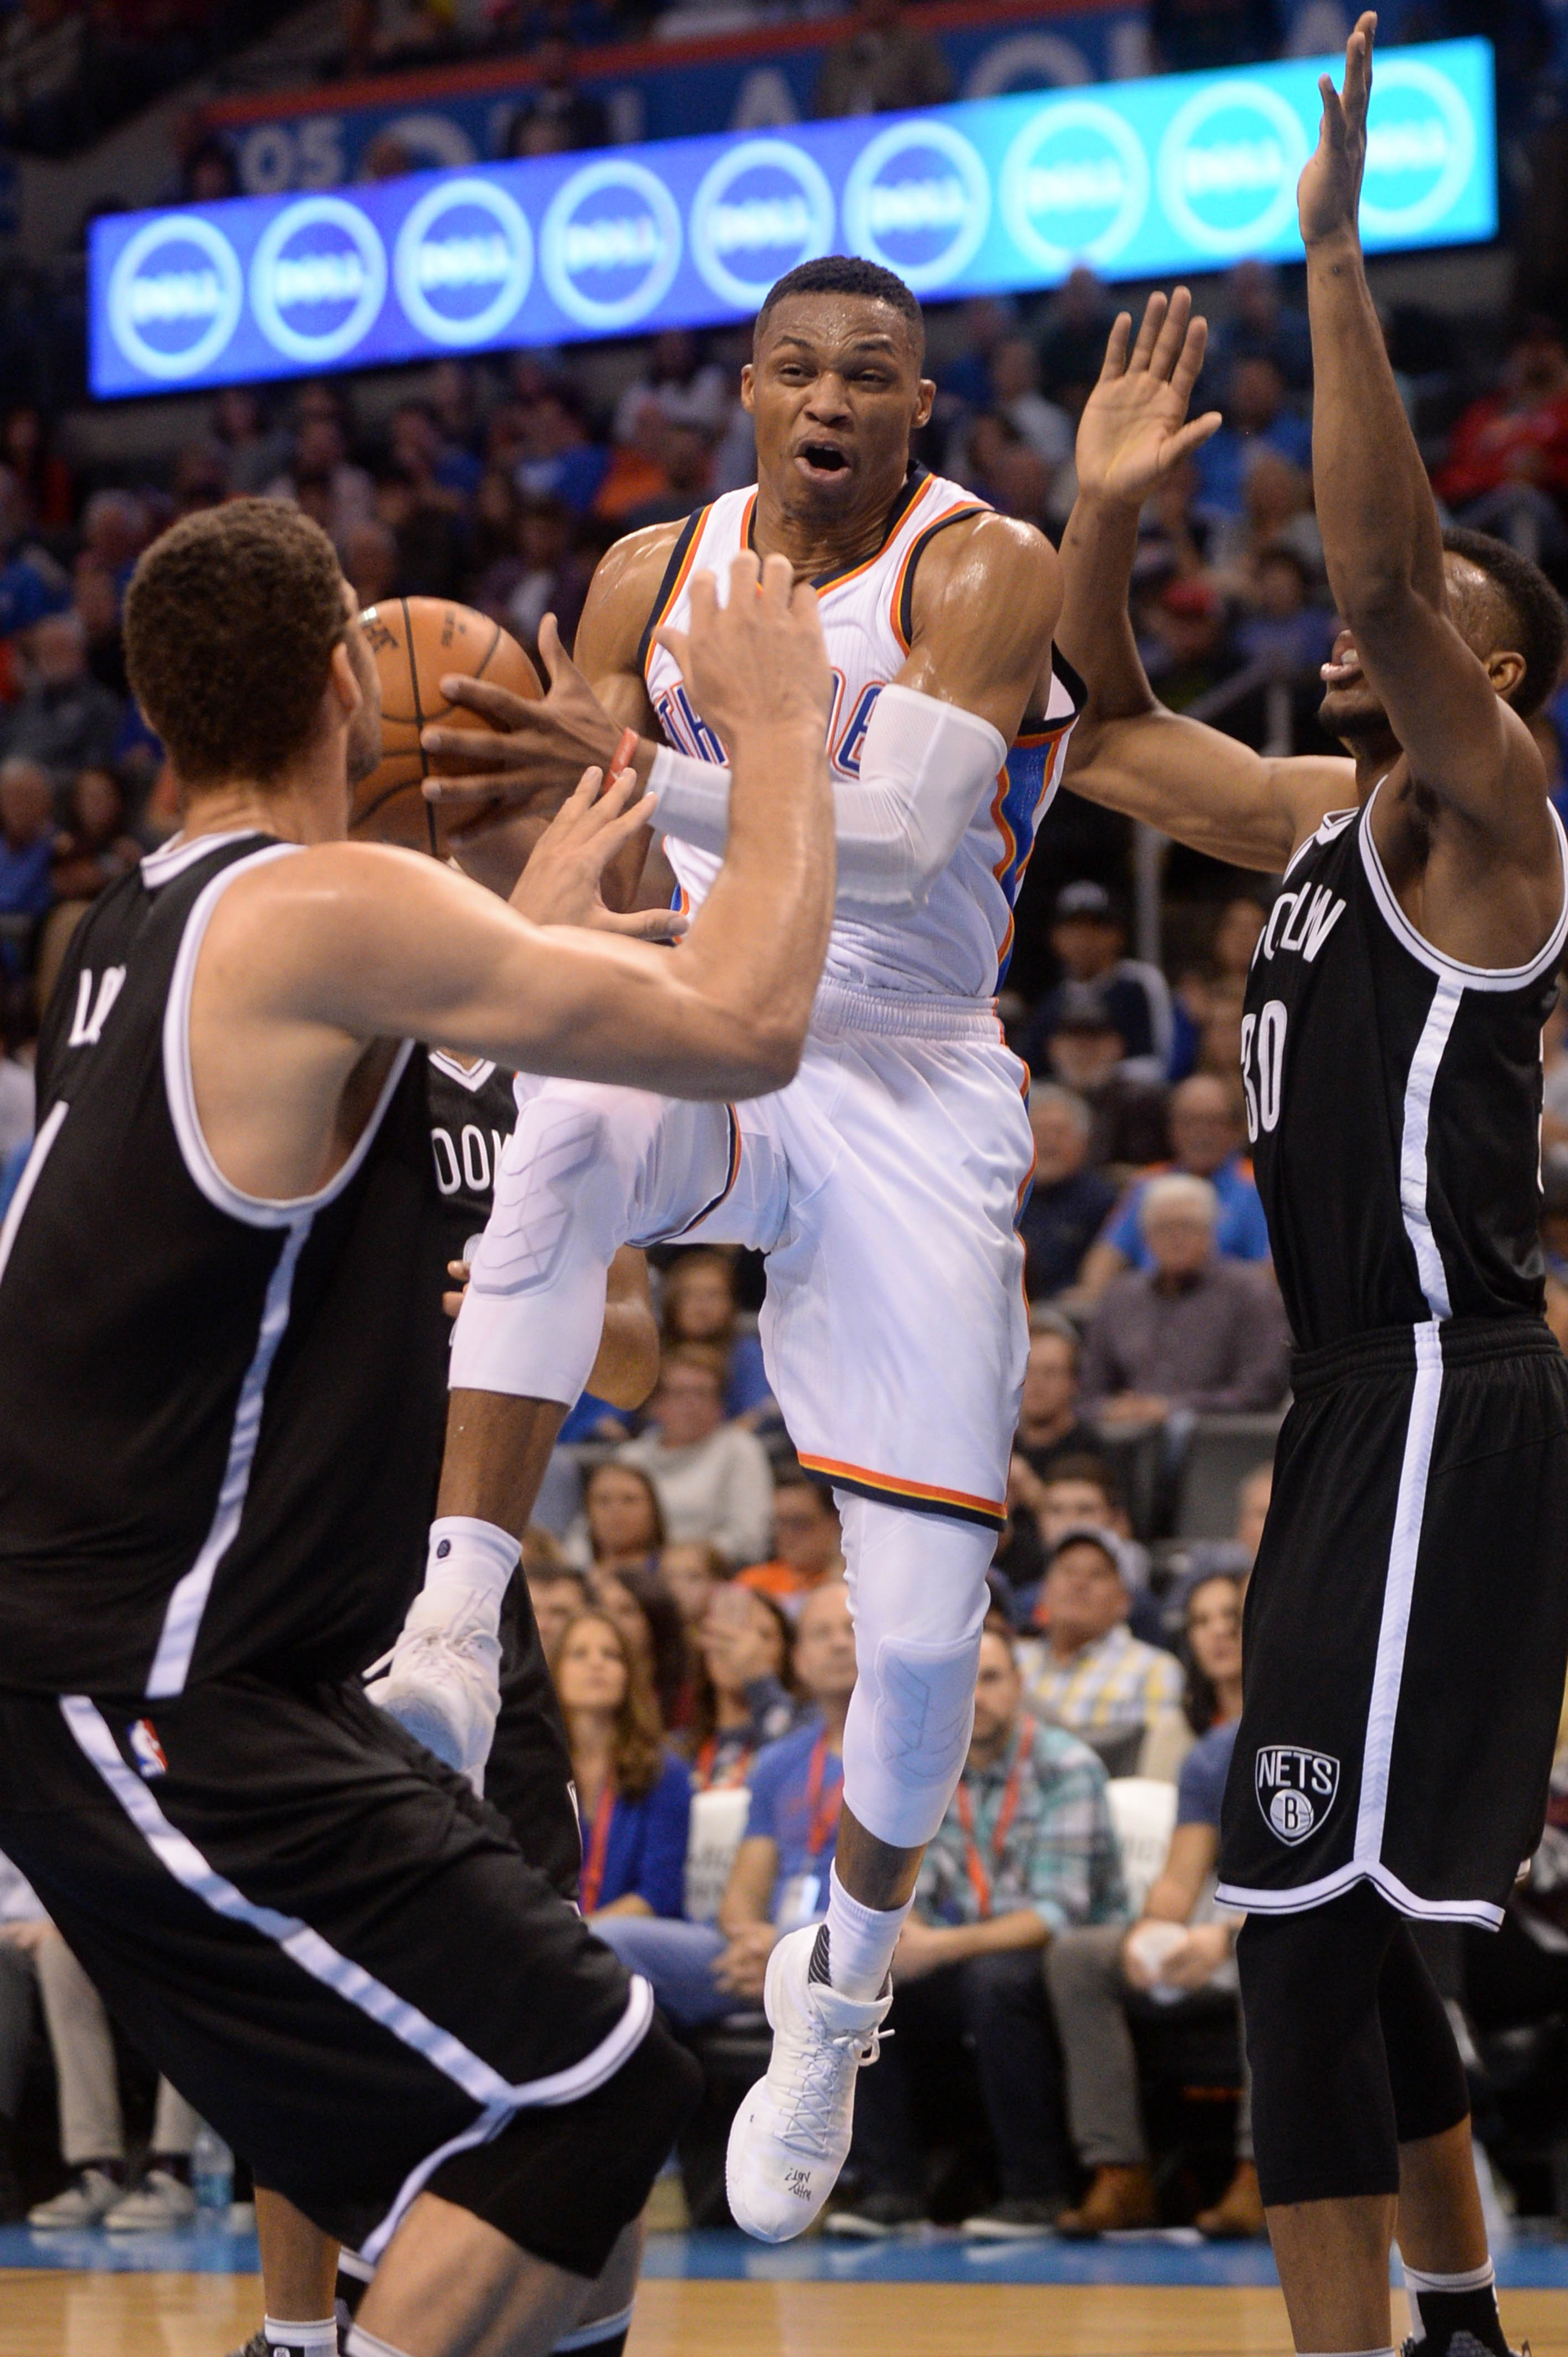 Westbrook knows when you're triple-teaming him, even with his eyes closed.